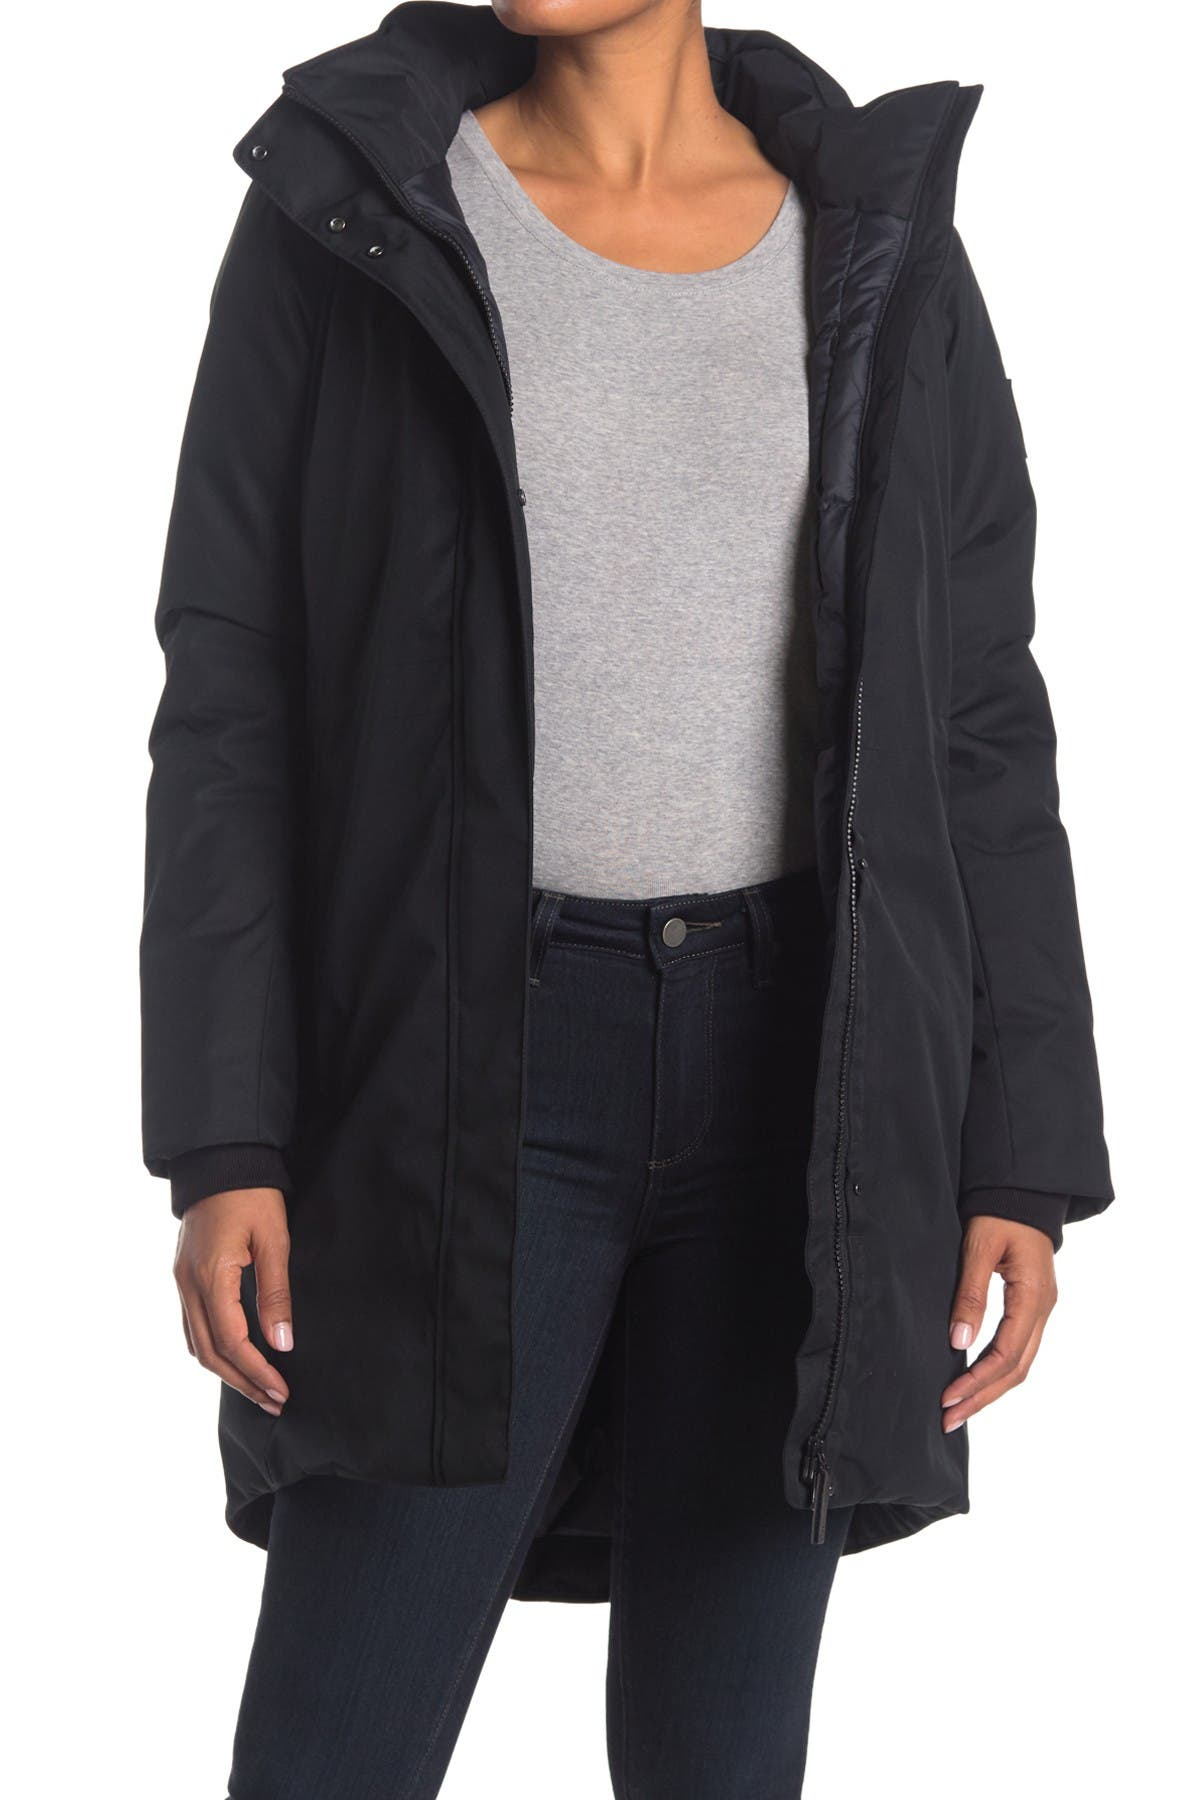 Image of Lole Mary Beth Hooded Down Jacket